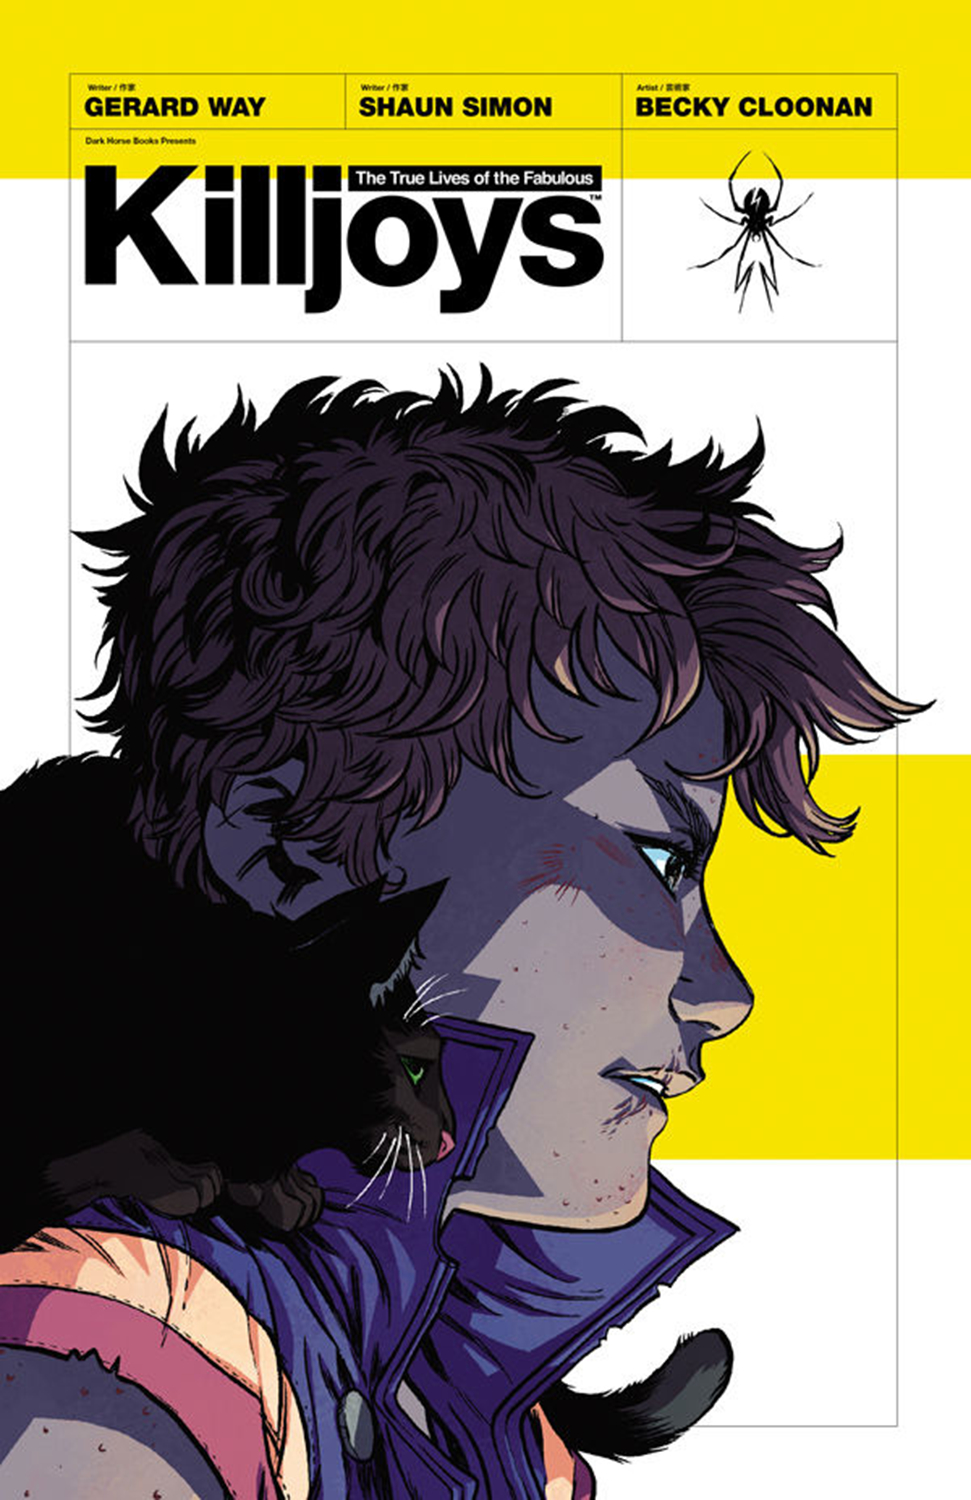 TRUE LIVES OF FABULOUS KILLJOYS TP